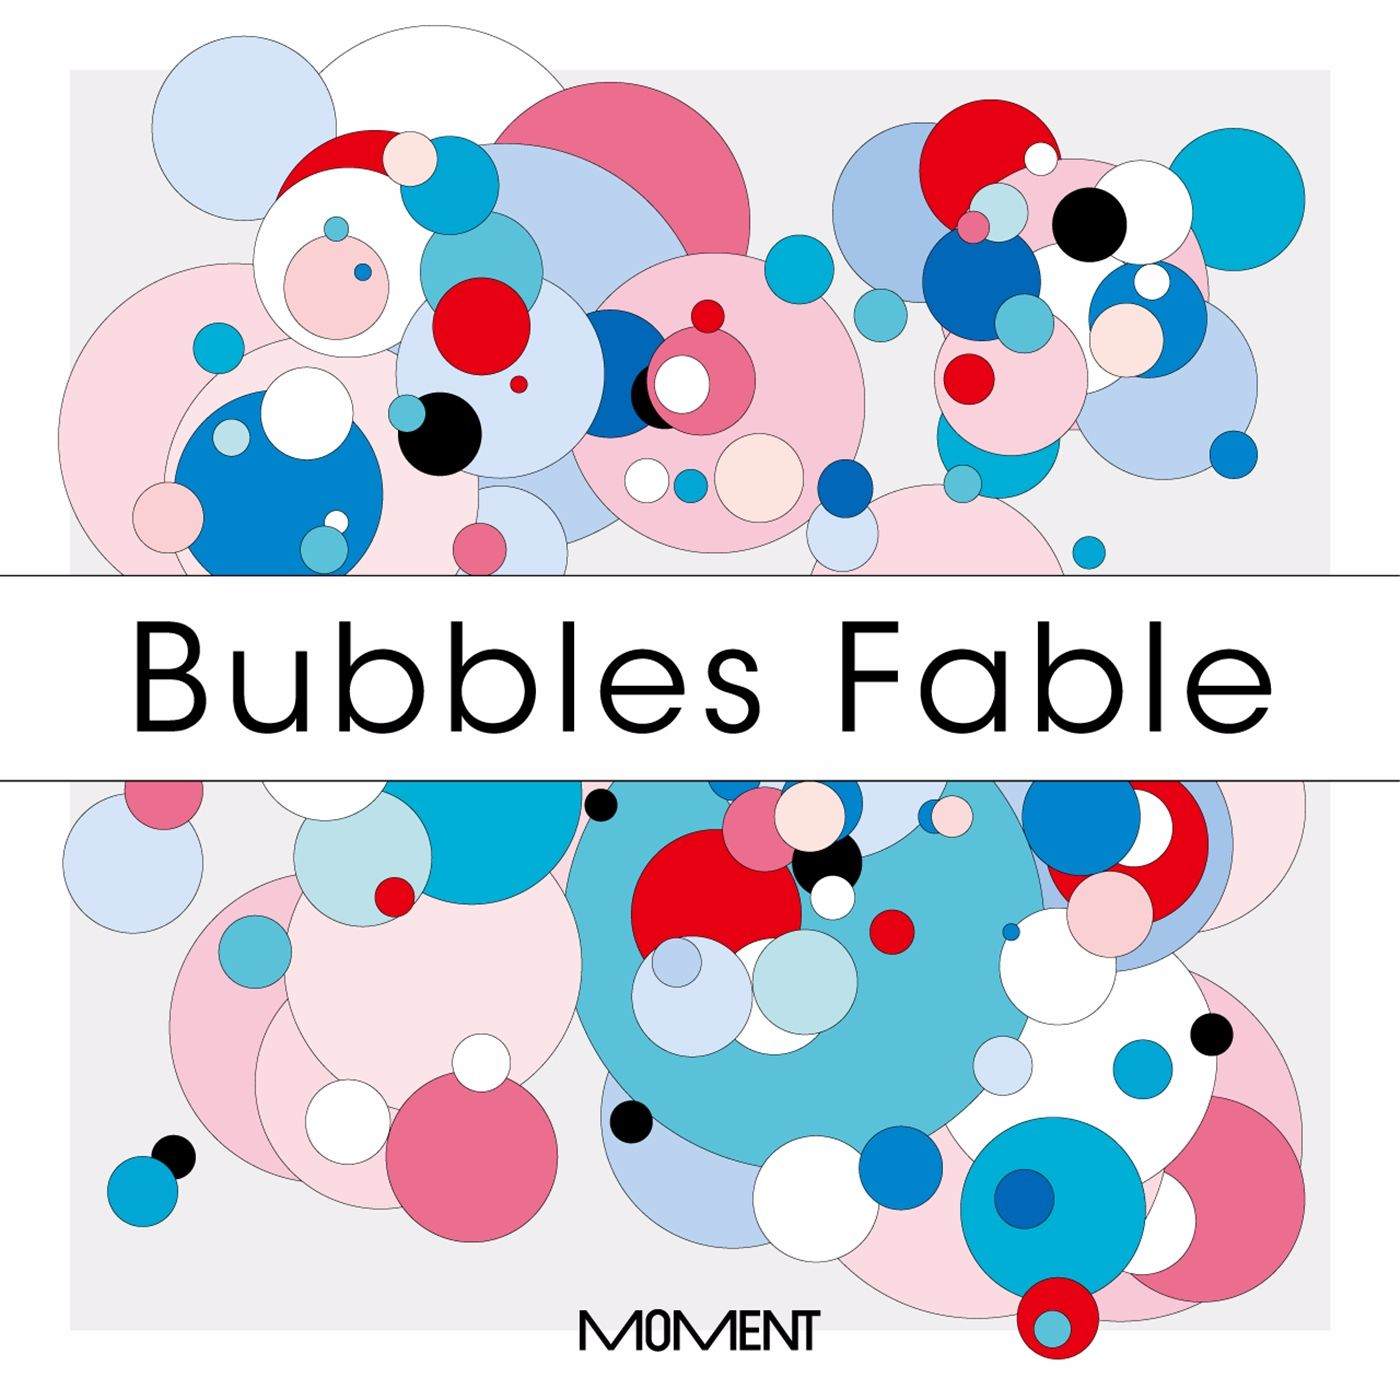 Moment - Bubbles Fable Podcast